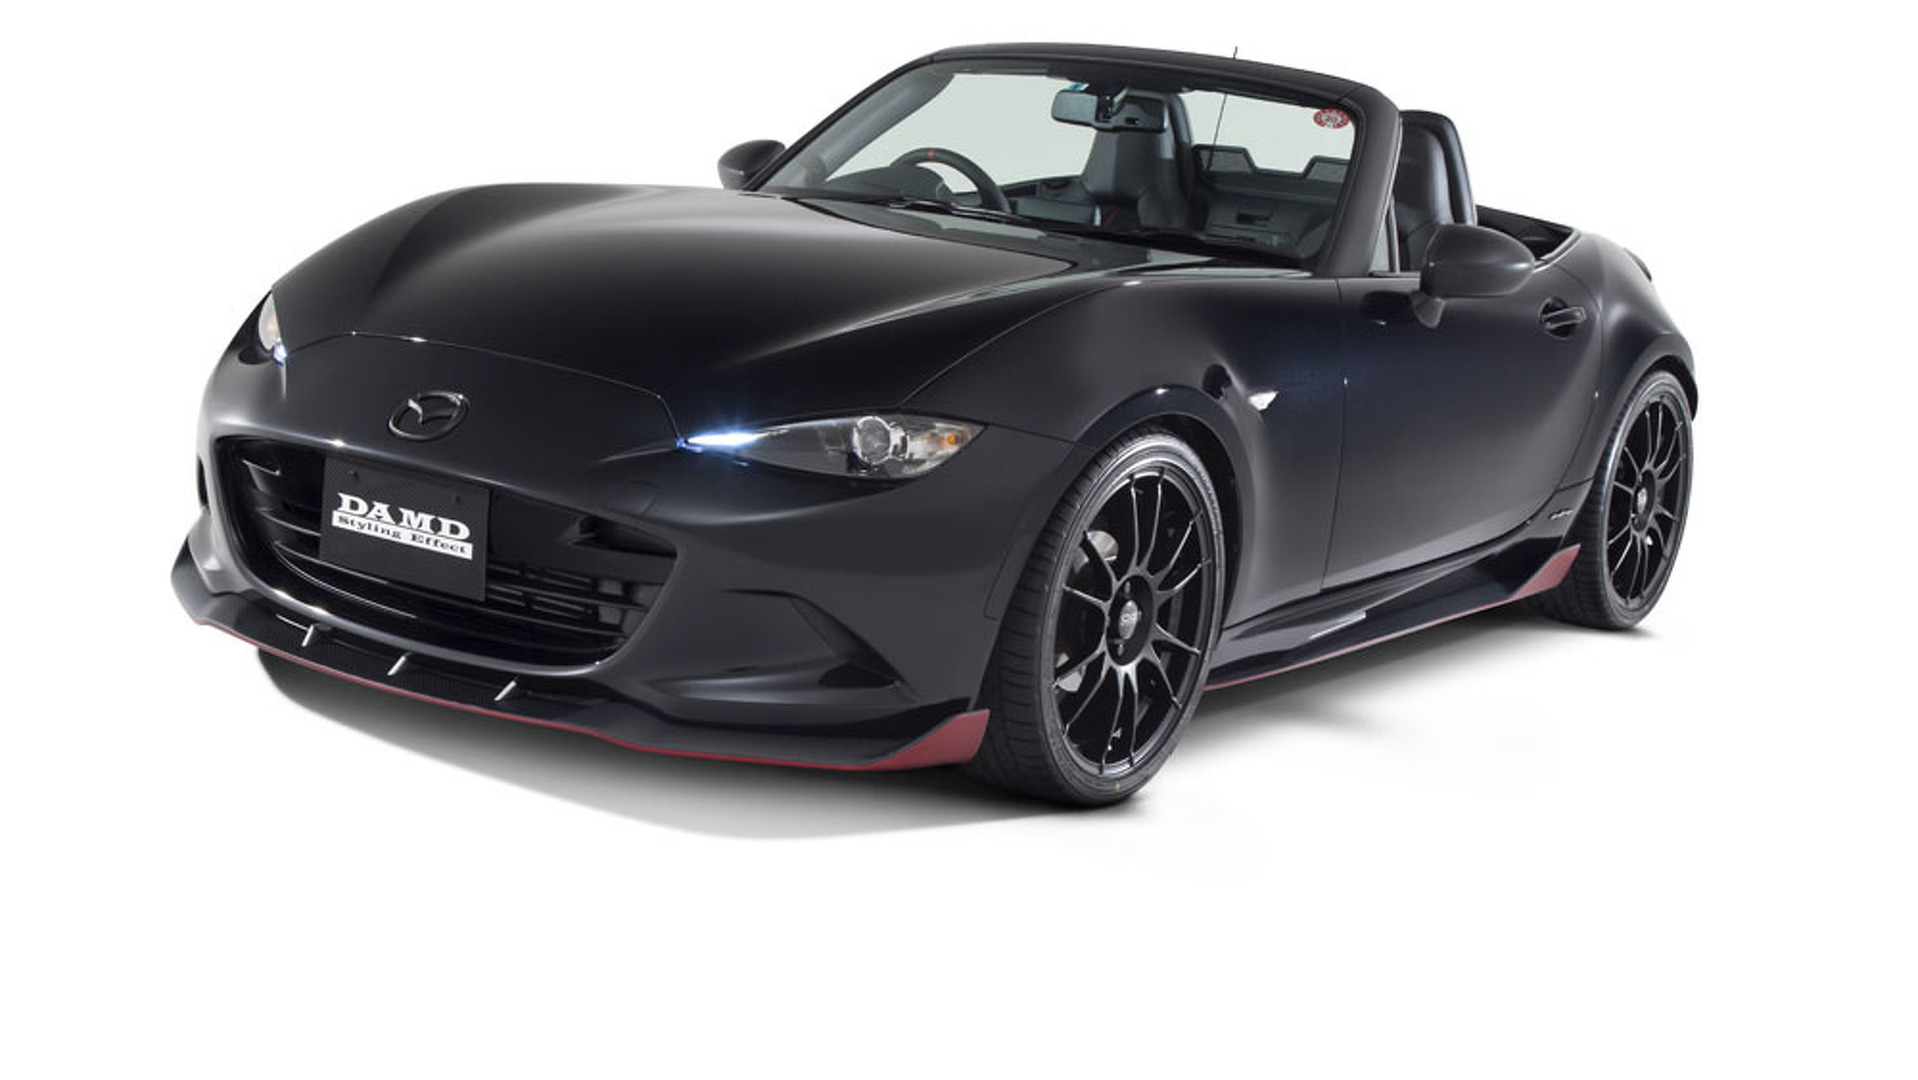 Mazda MX-5 Miata Dark Knight тюнинг от DAMD